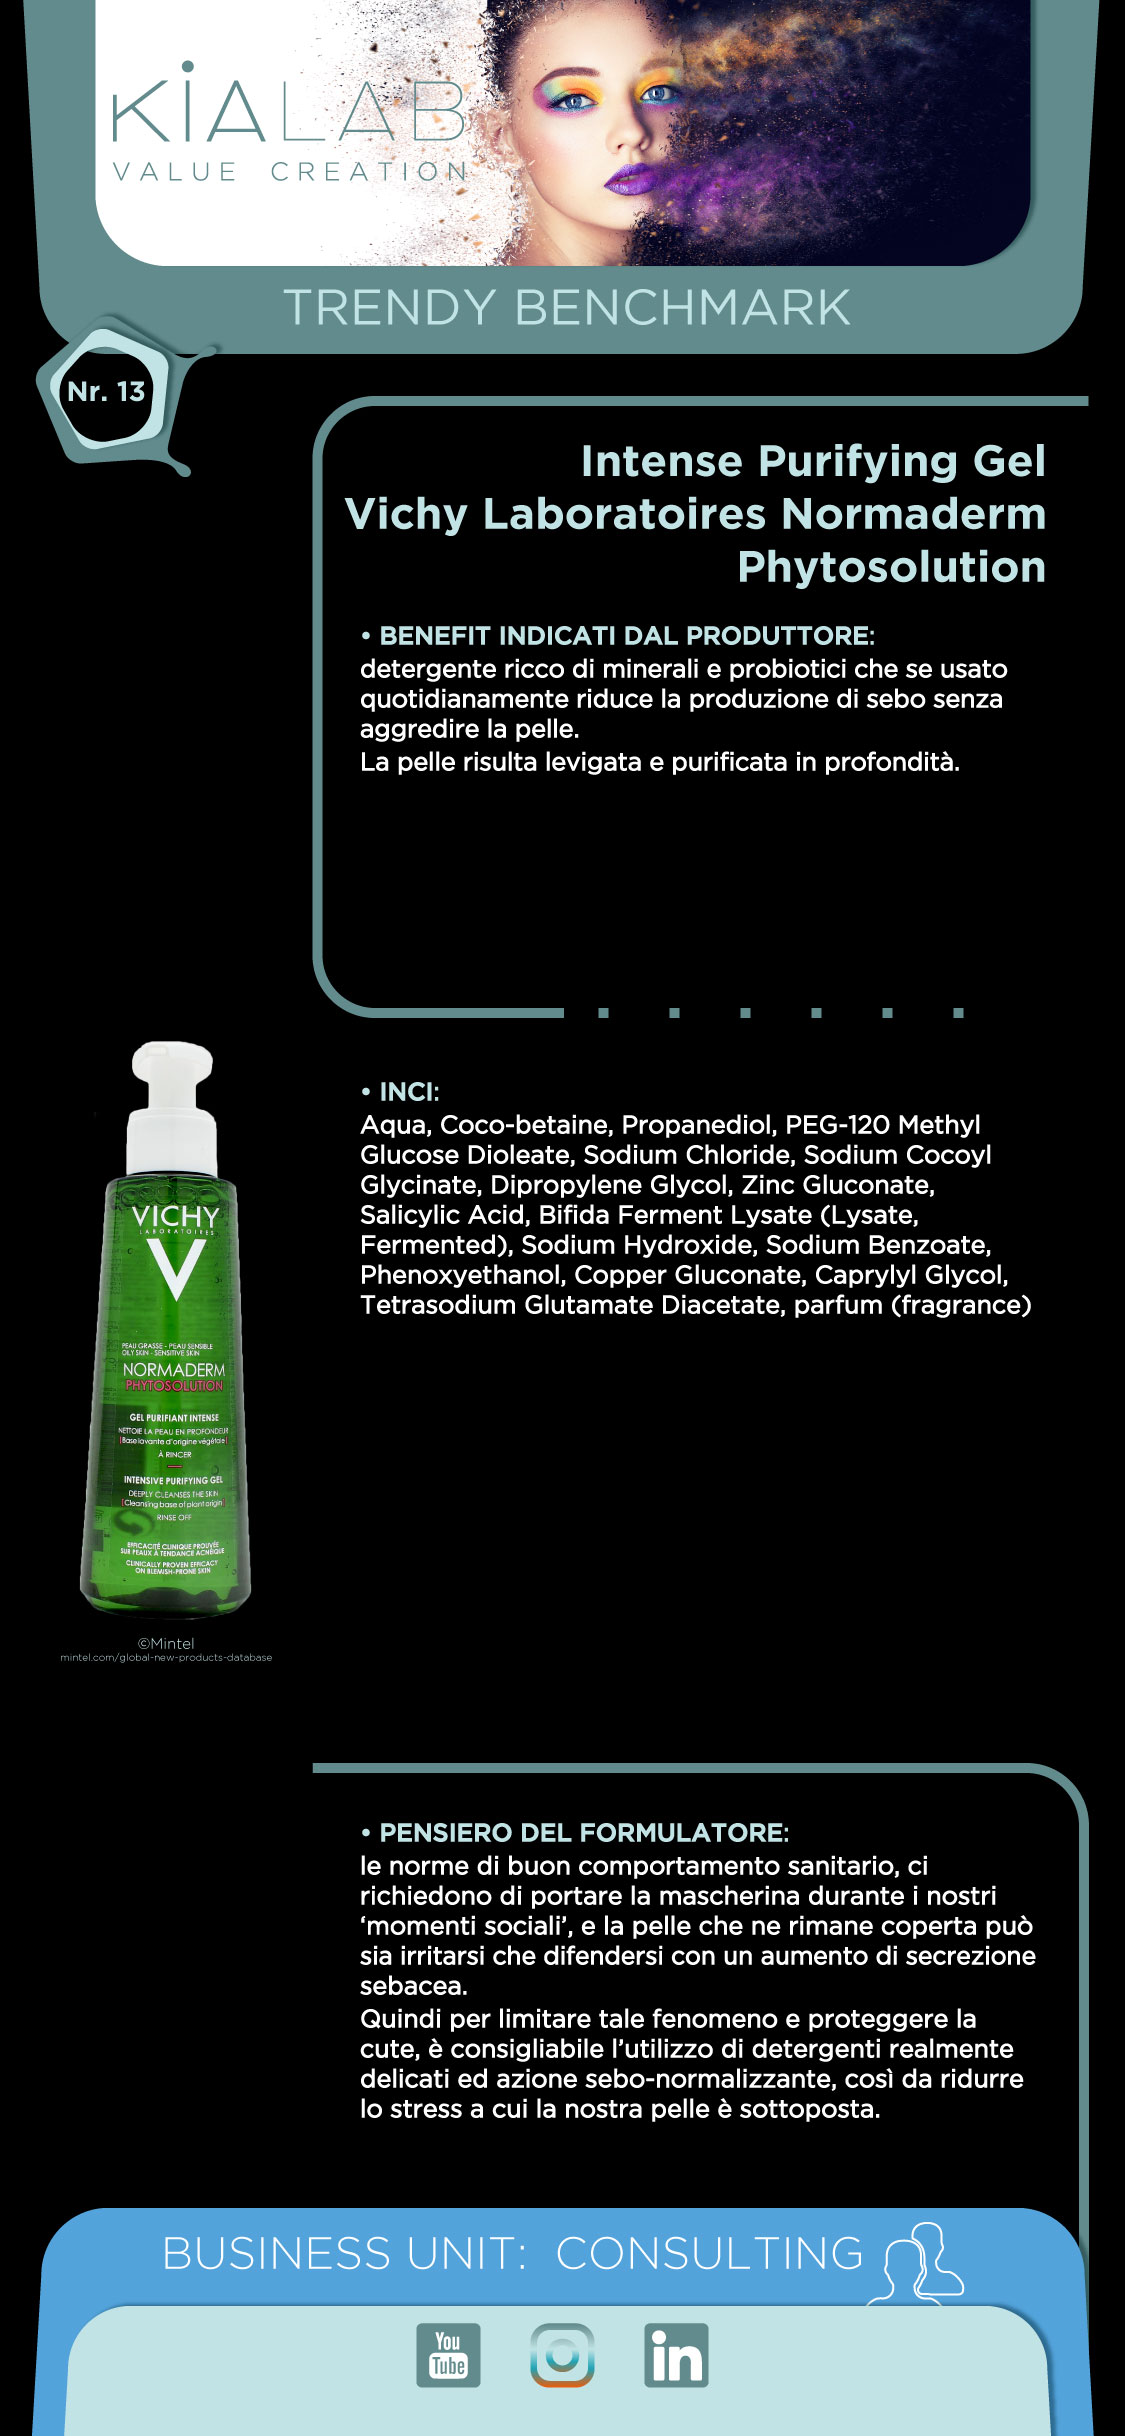 Trendy Benchmark Kialab Intense Purifying Gel Vichy® Laboratoires Normaderm Phytosolution